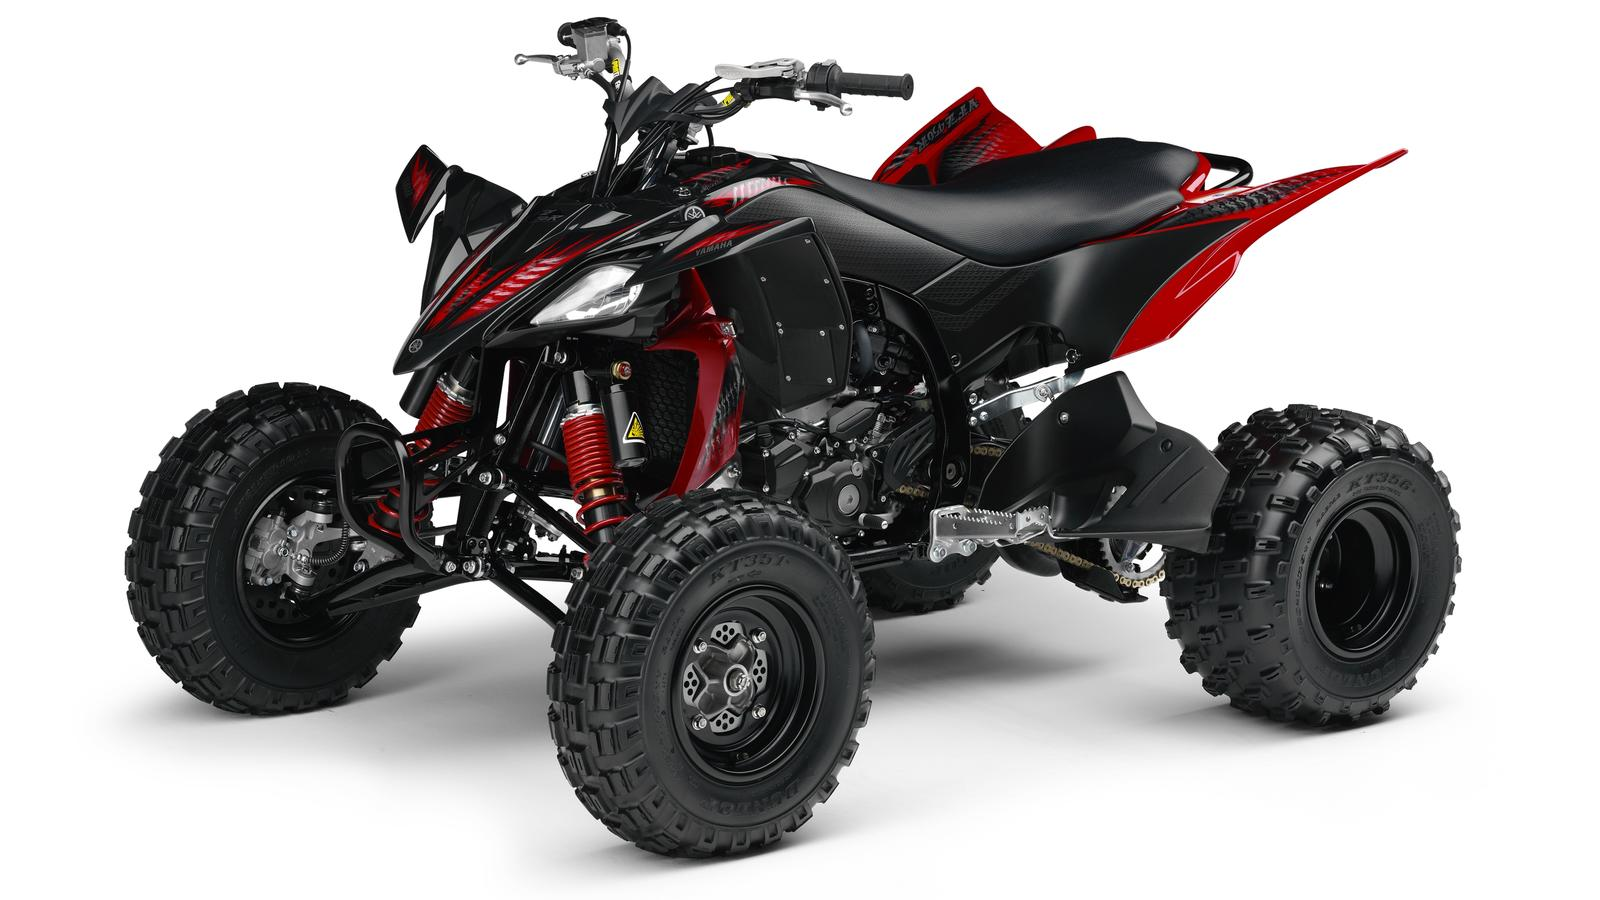 YAMAHA YFZ 450 R 2011 photo 4